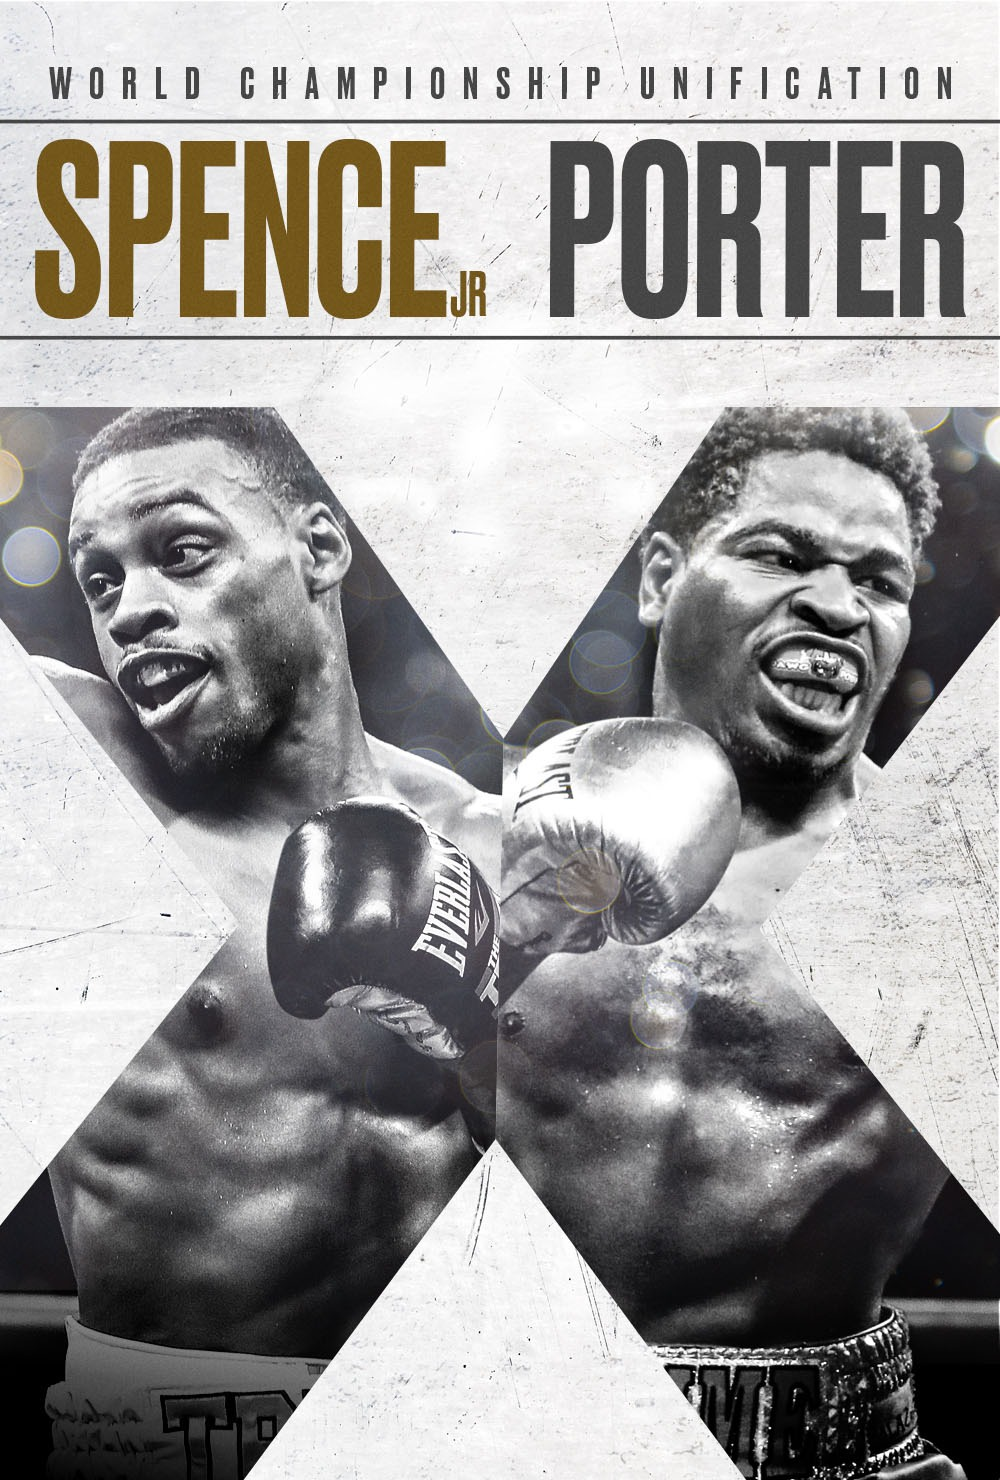 Spence Jr. vs Porter